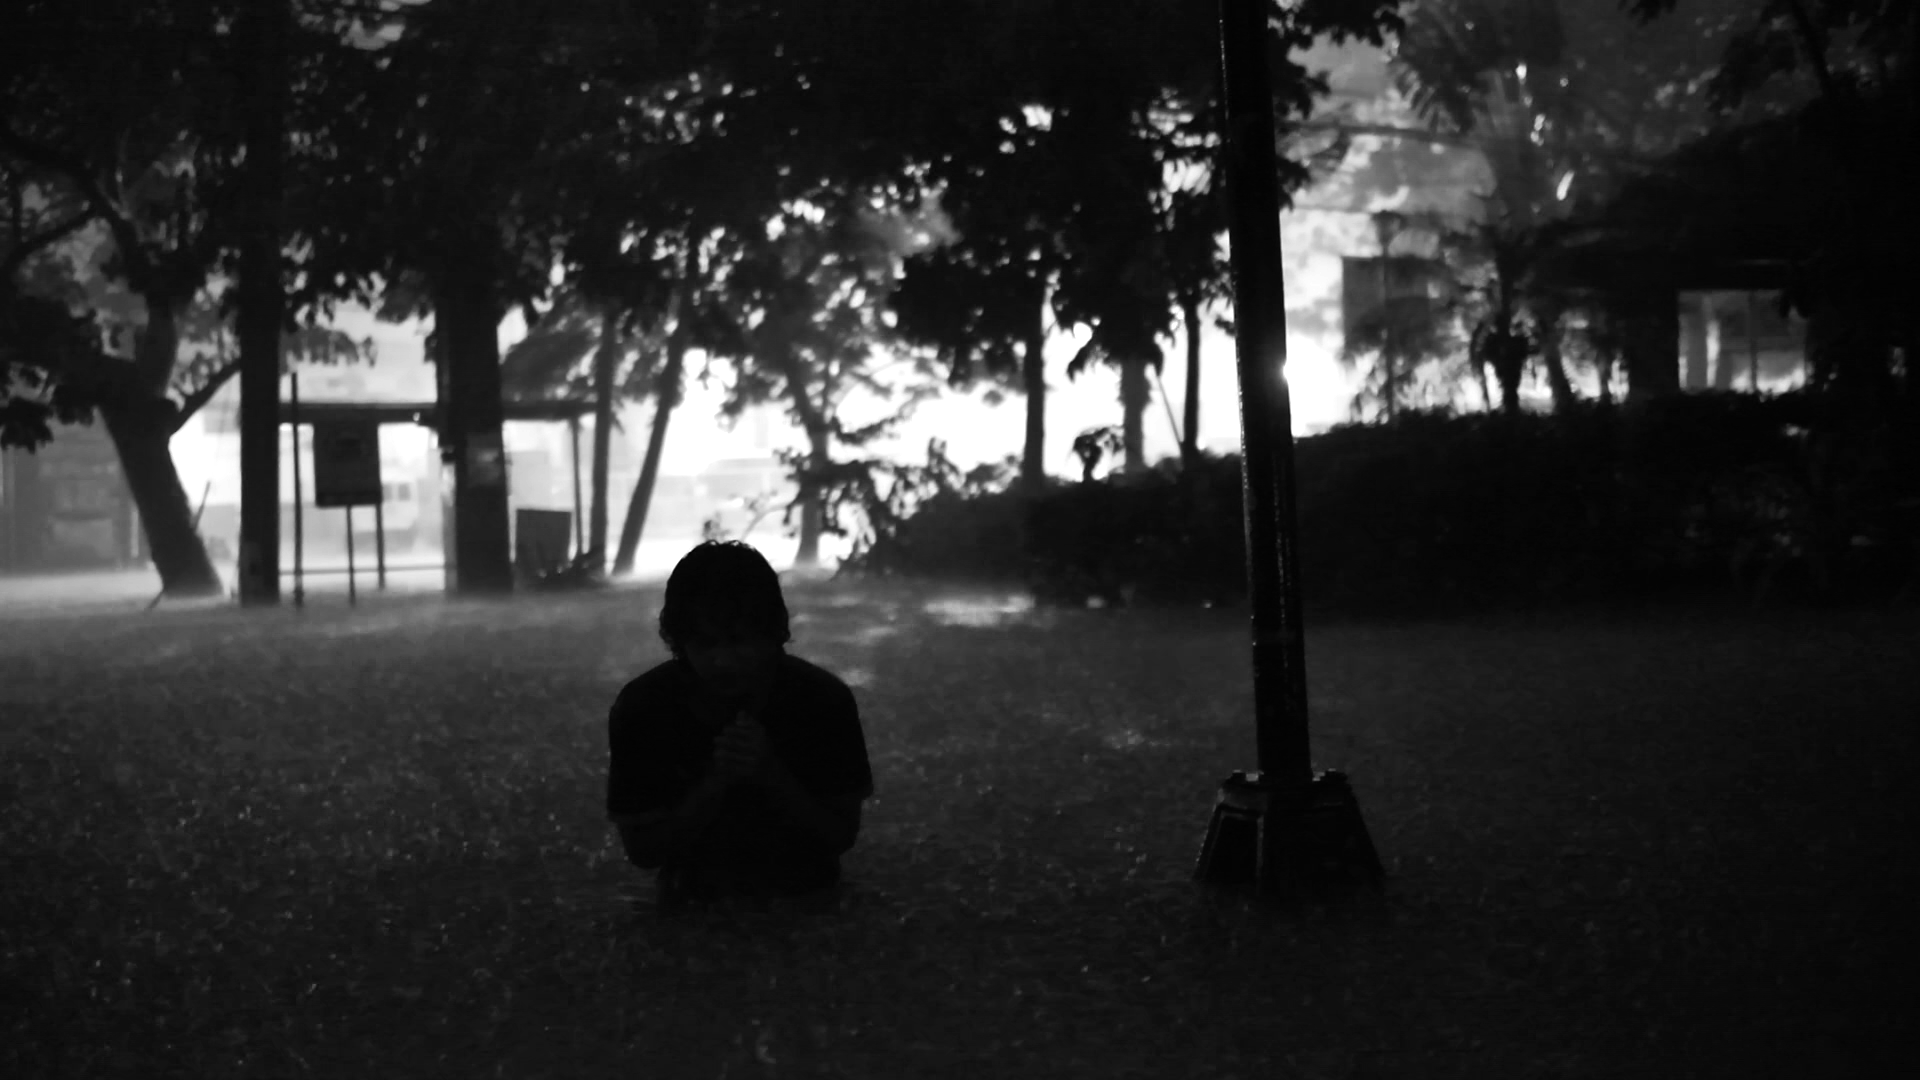 Lav Diaz /Philippines / 2015 / Filipino / 16min   In the year 2050, the Philippines braces for the coming of the fiercest storm ever to hit the country. As the wind and waters start to rage, poets are being murdered.   Director: Lavrente Indico Diaz, aka Lav Diaz, is a filmmaker from the Philippines, born on December 30, 1958 and raised in Cotabato, Mindanao. He works as director, writer, producer, editor, cinematographer, poet, composer, production designer and actor all at once. He is especially notable for the length of his films, some of which run for up to eleven hours. That is because his films are not governed by time but by space and nature. His films dig into the social and political struggles of his motherland and through these, he has garnered the admiration of the international festival circuit.